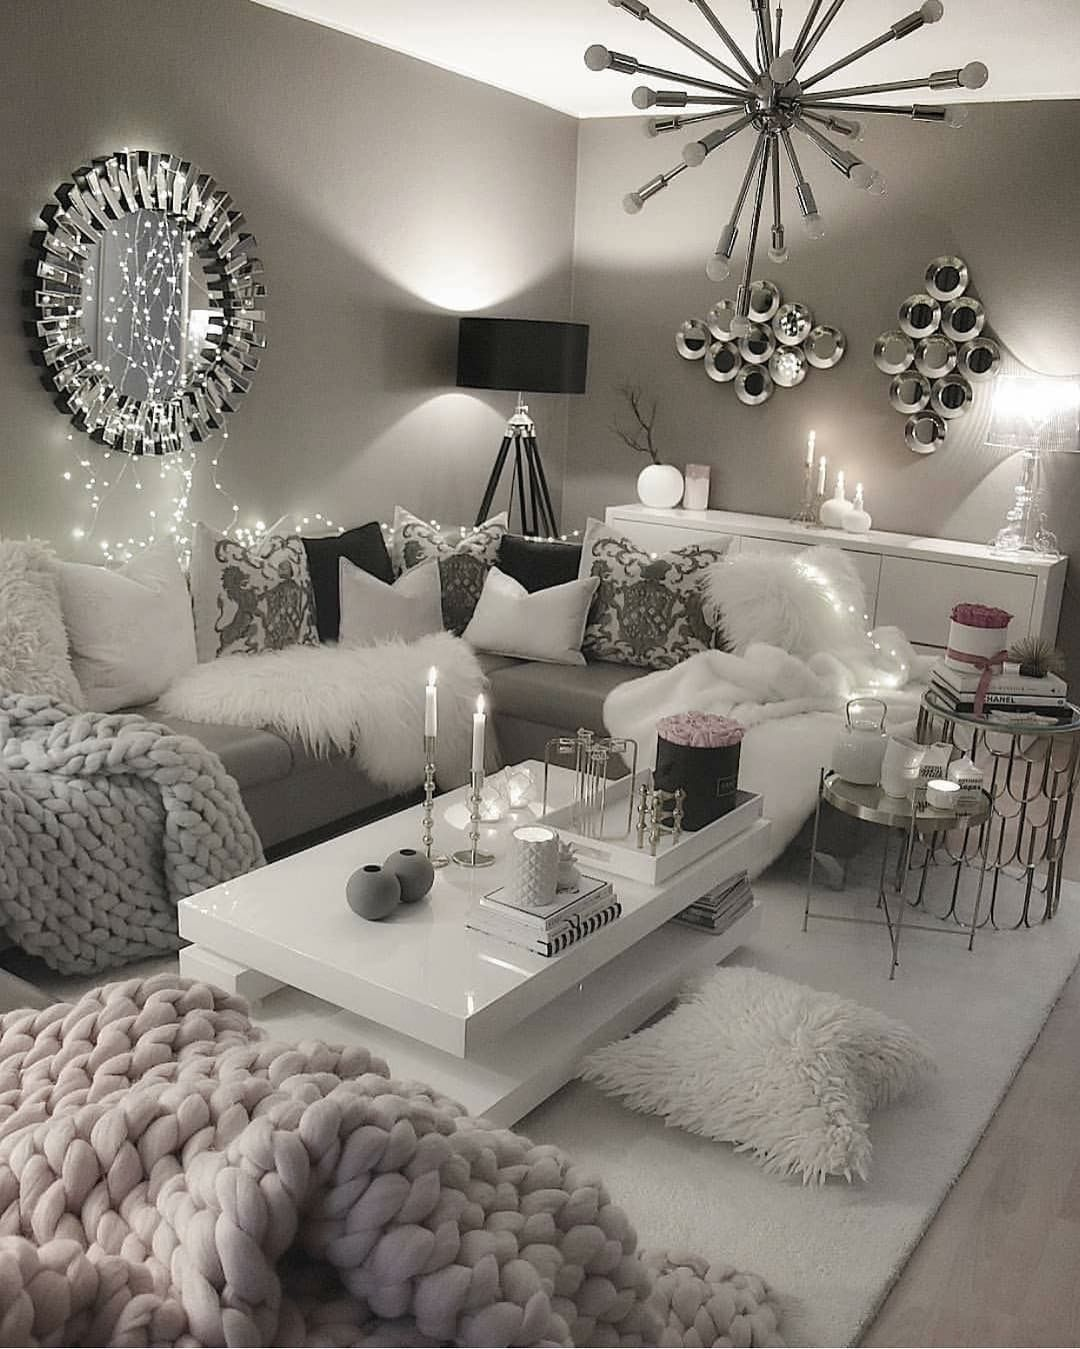 Winter ideas for the home room interior design dream decor decoration also favorite places  spaces living rh pinterest